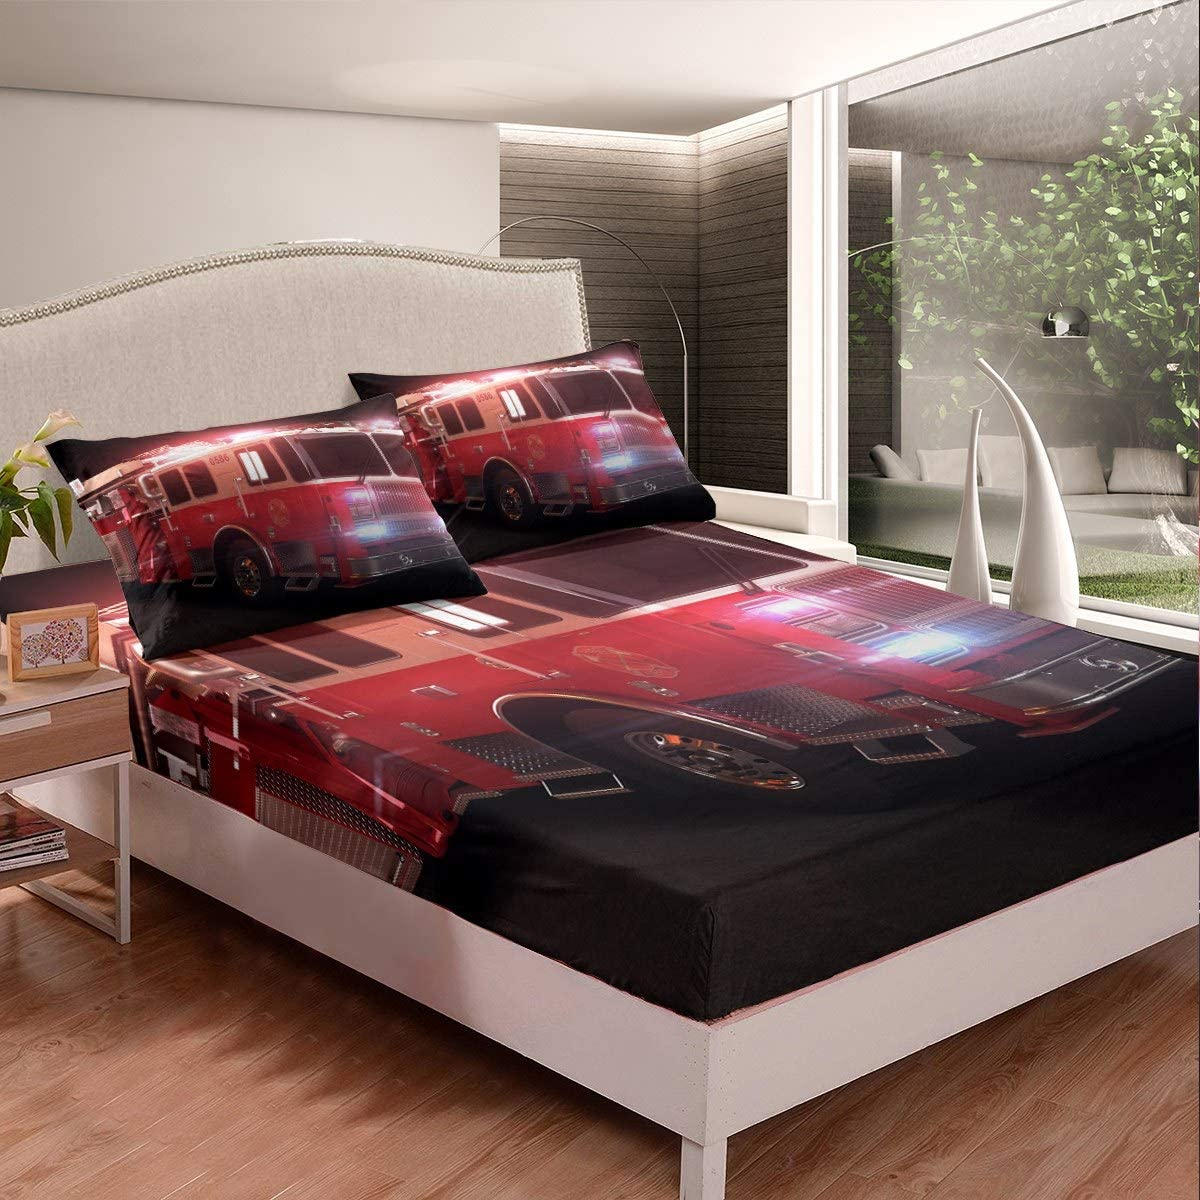 Amazon Com Feelyou Fire Truck Bed Sheet Set Fire Emergency Rescue Bedding Set For Kids Boys Girls Vehicle Transportation Fitted Sheet Firefighter Bed Cover With 1 Pillowcase 2pcs Twin Size Home Kitchen